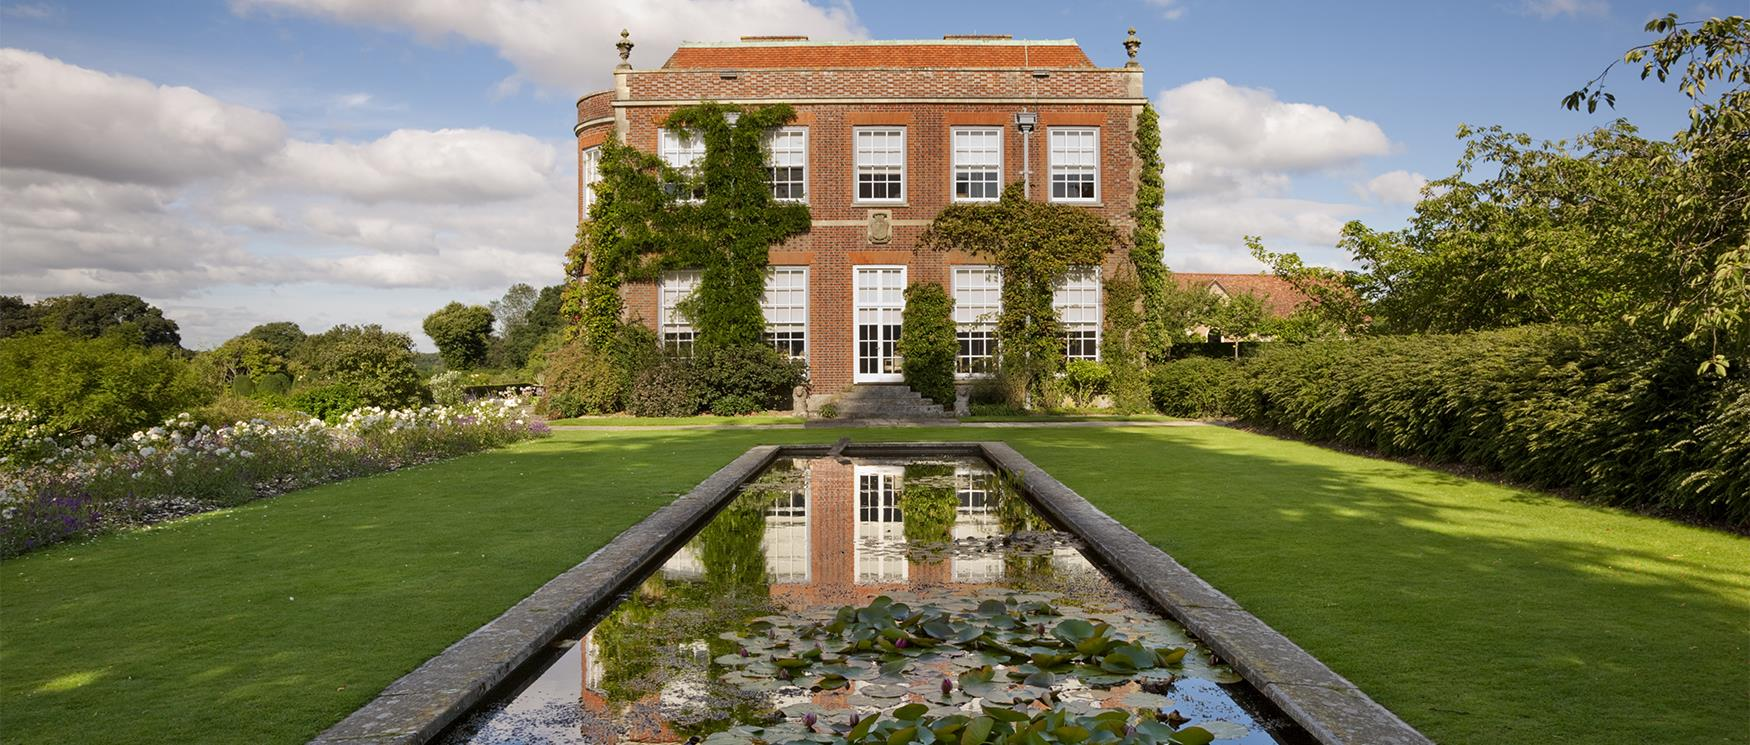 Stately Homes Castles In Hampshire Visit